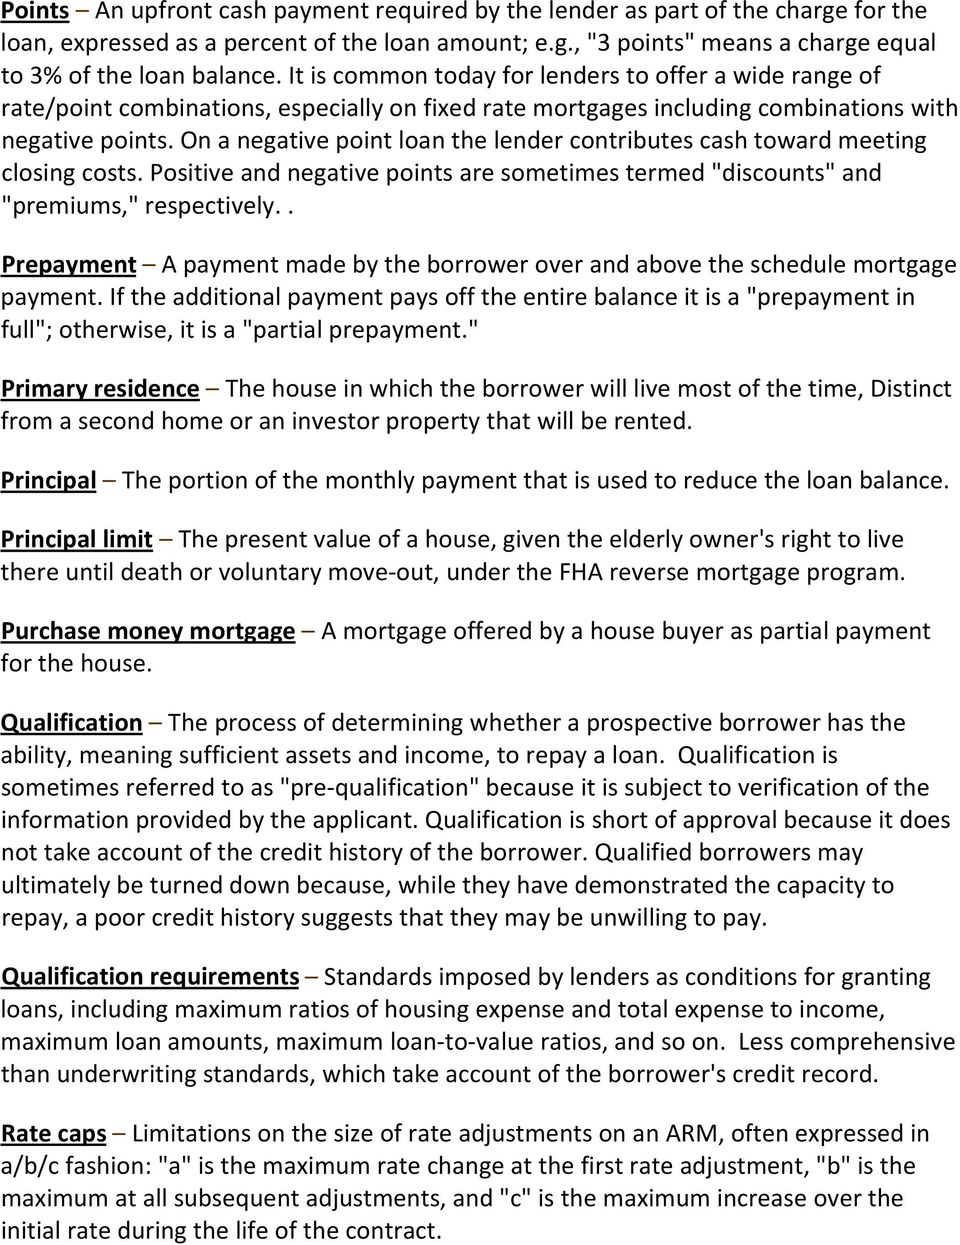 "On a negative point loan the lender contributes cash toward meeting closing costs. Positive and negative points are sometimes termed ""discounts"" and ""premiums,"" respectively."